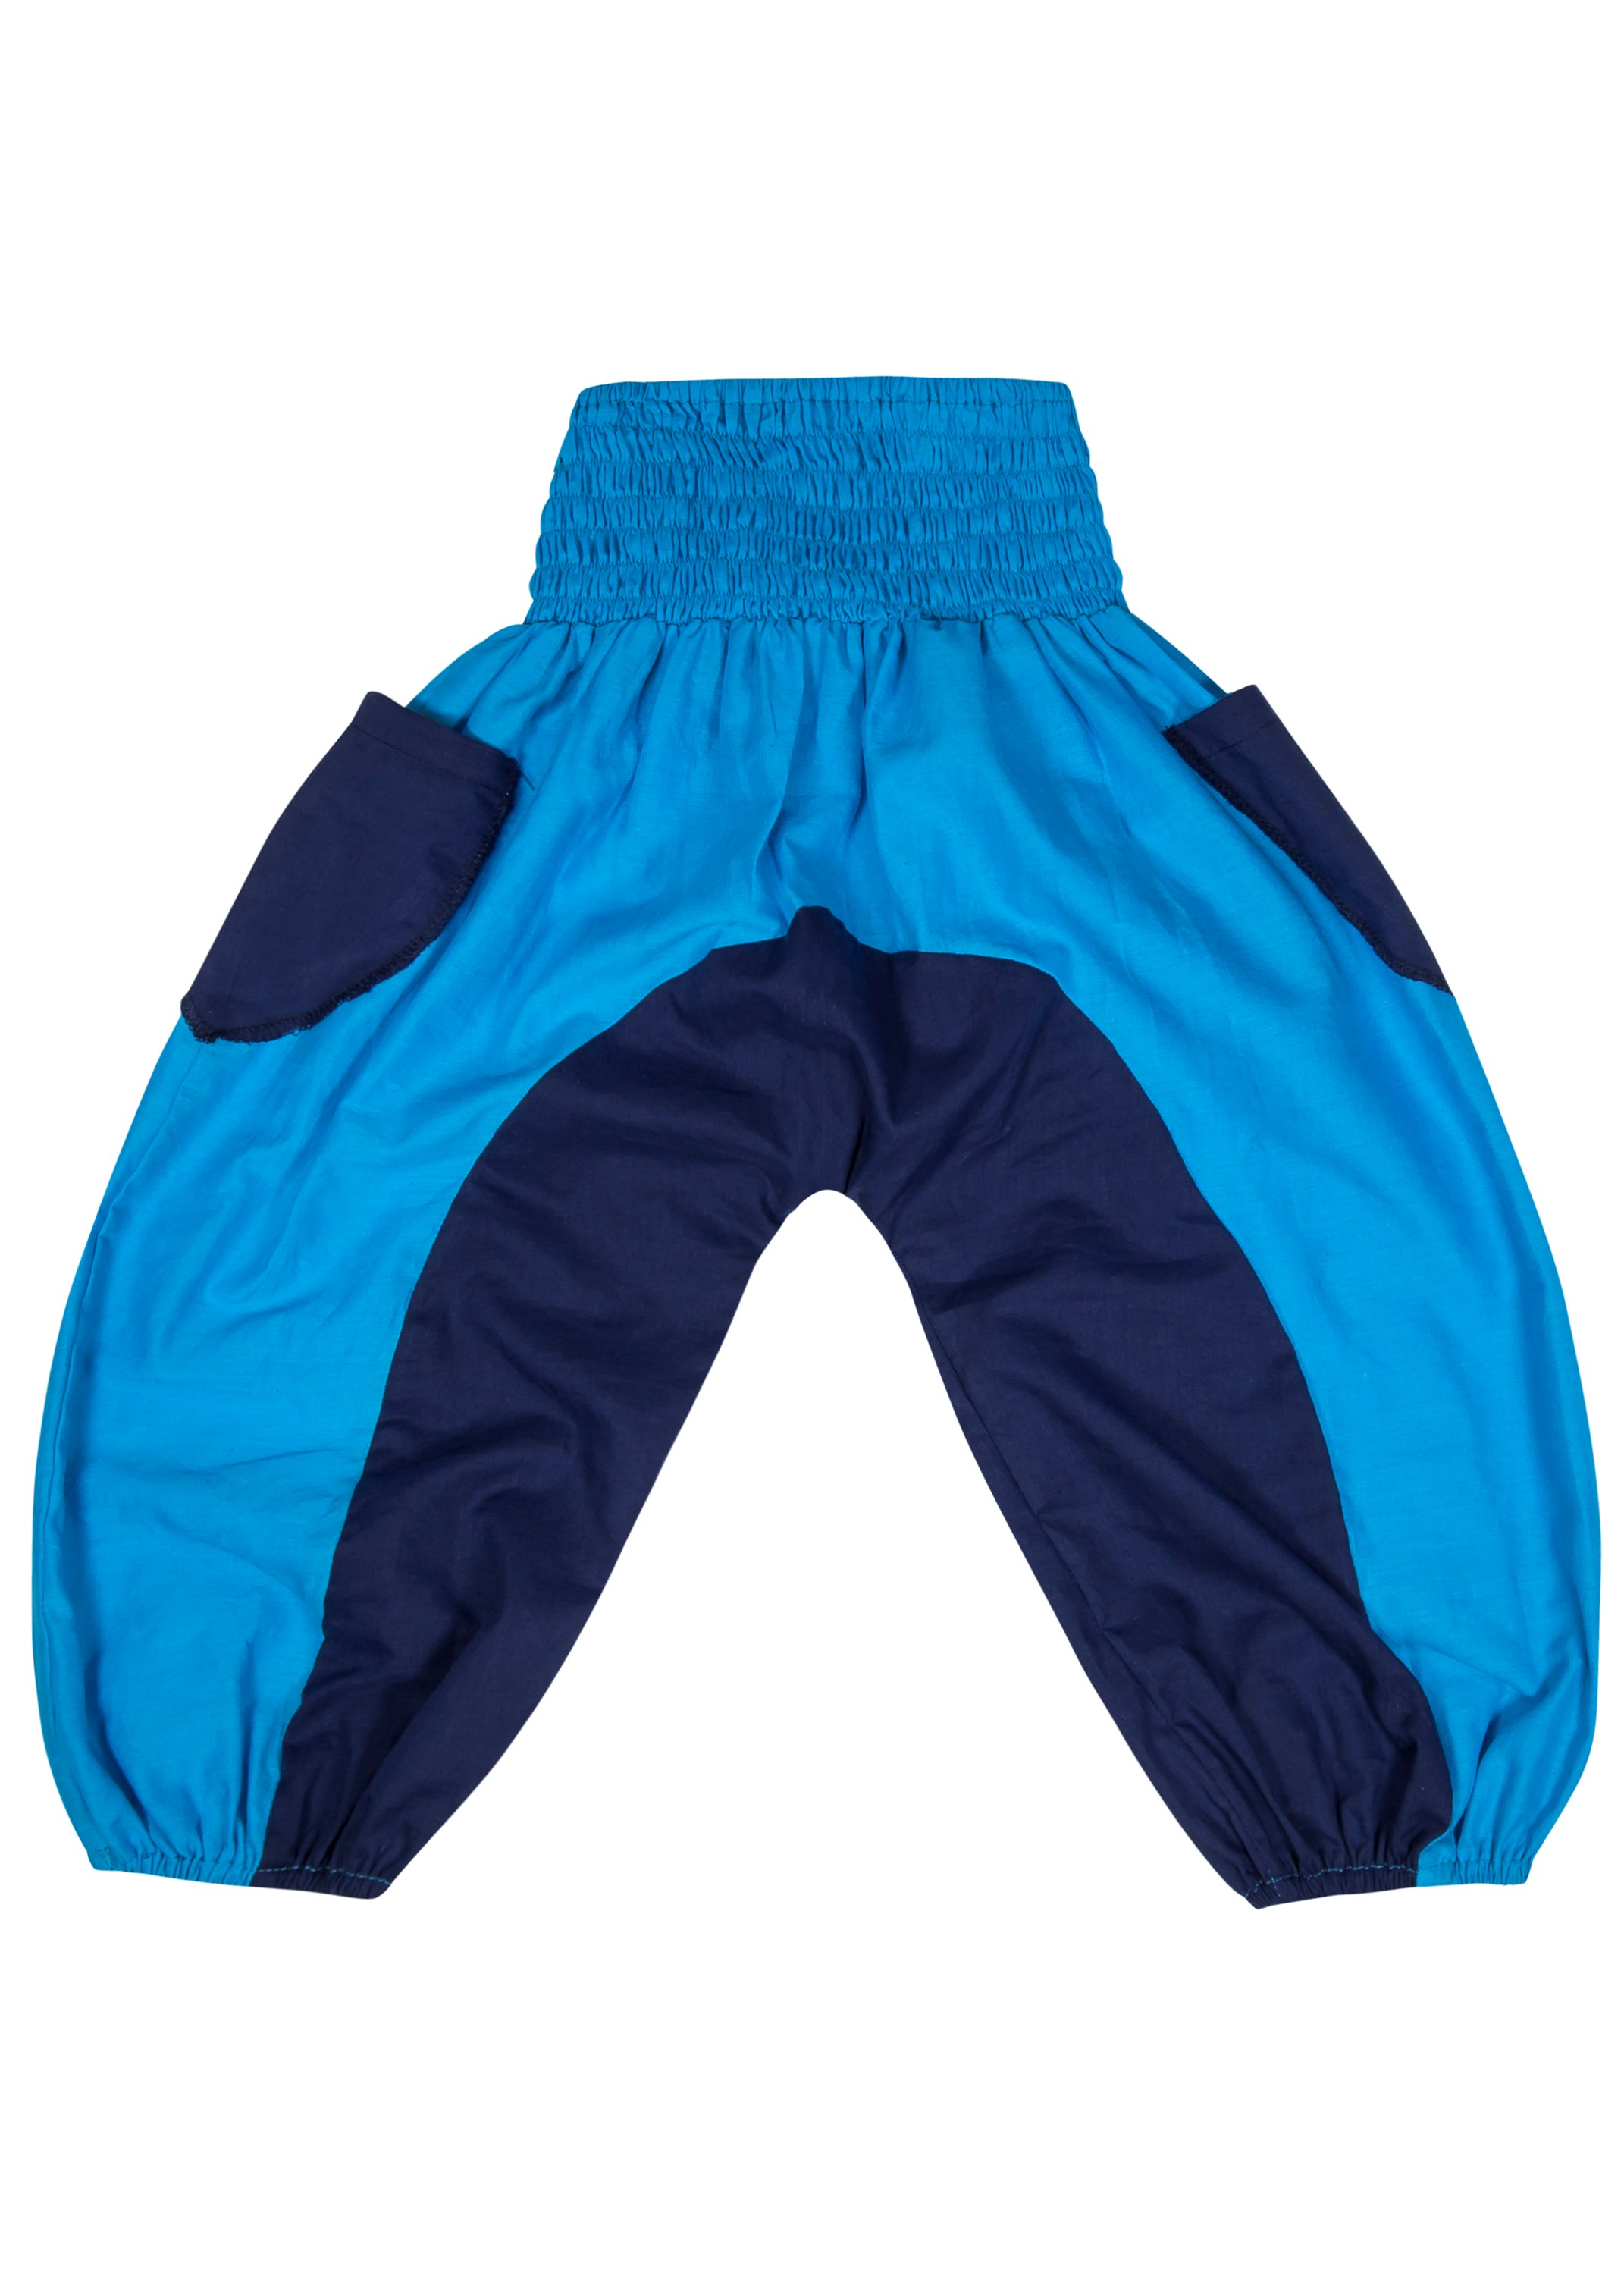 Colourblock Cotton Pantaloon Pants Turquoise